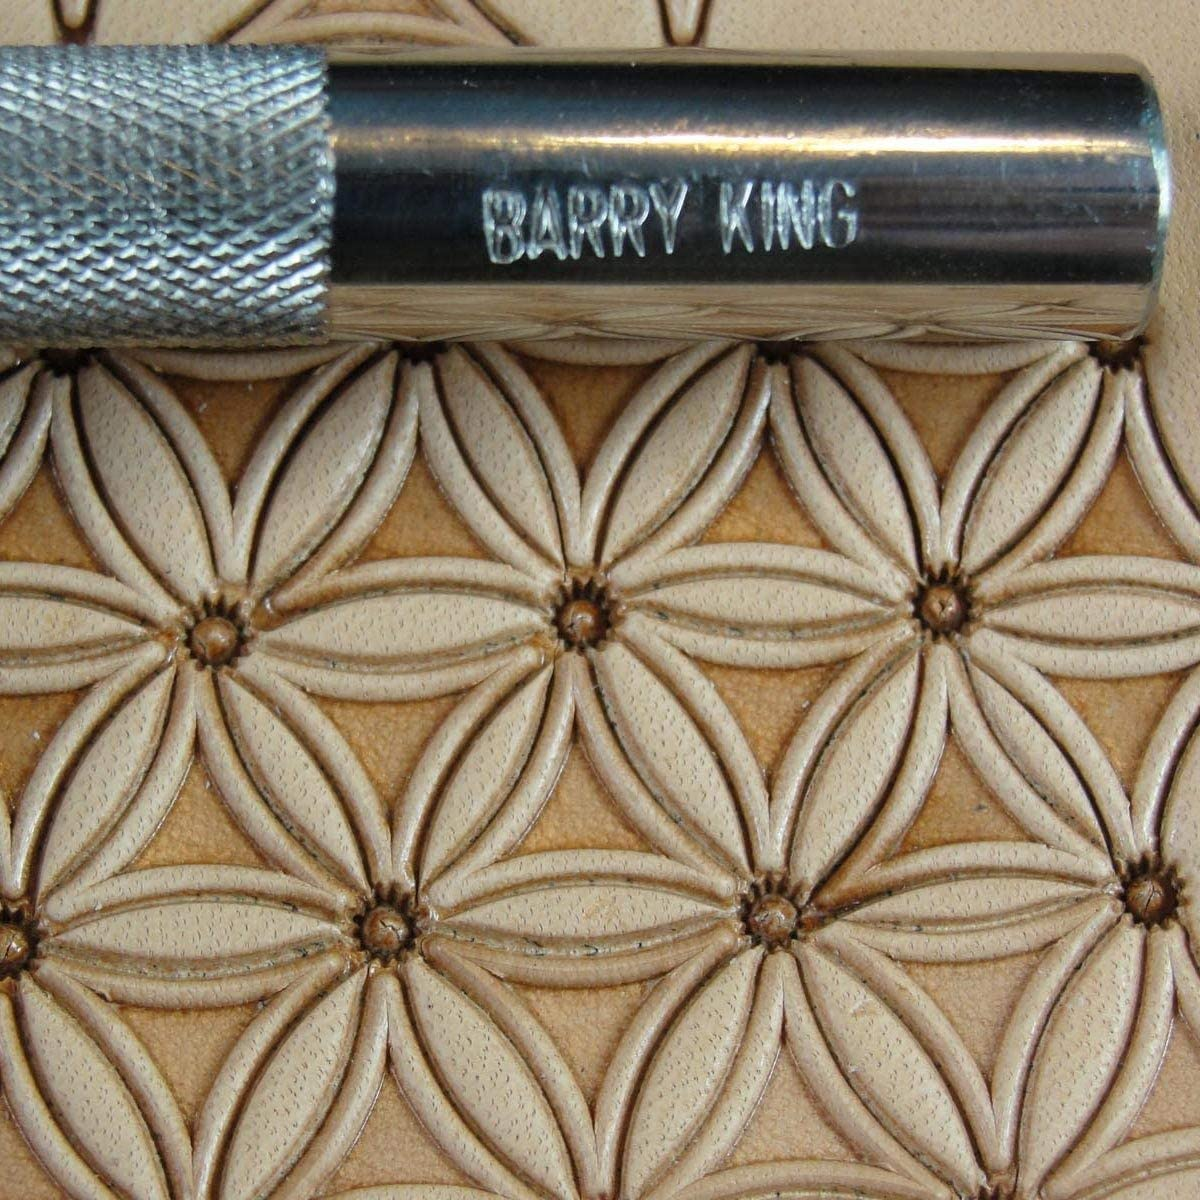 #3 Solid Tri Border Geometric Stamp Stainless Steel Barry King Leather Tool